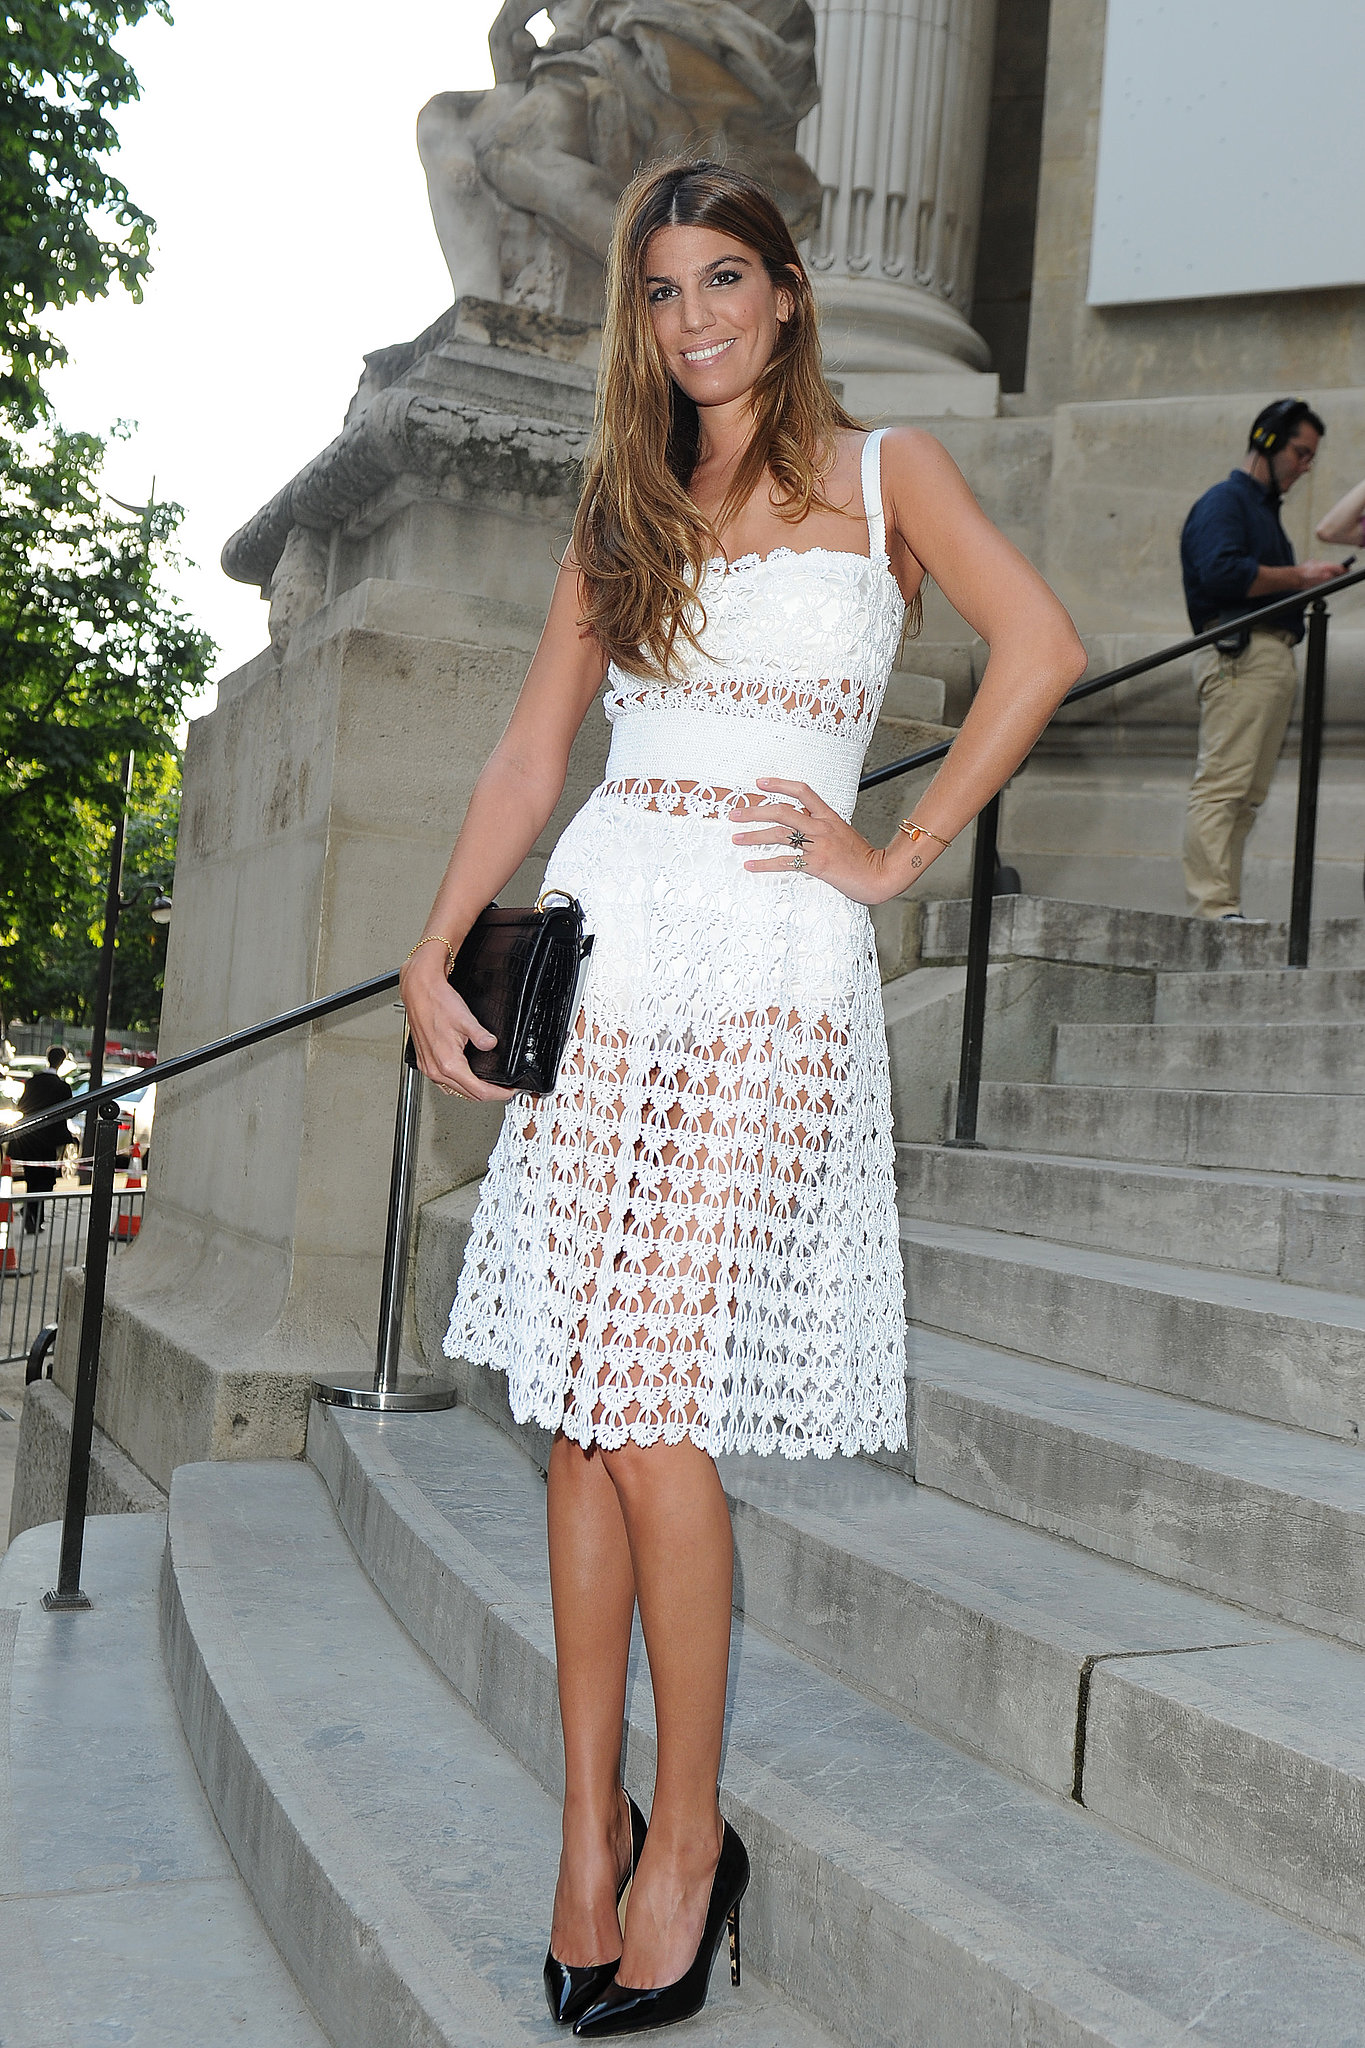 Lacy white fabric is spot-on for a Summer